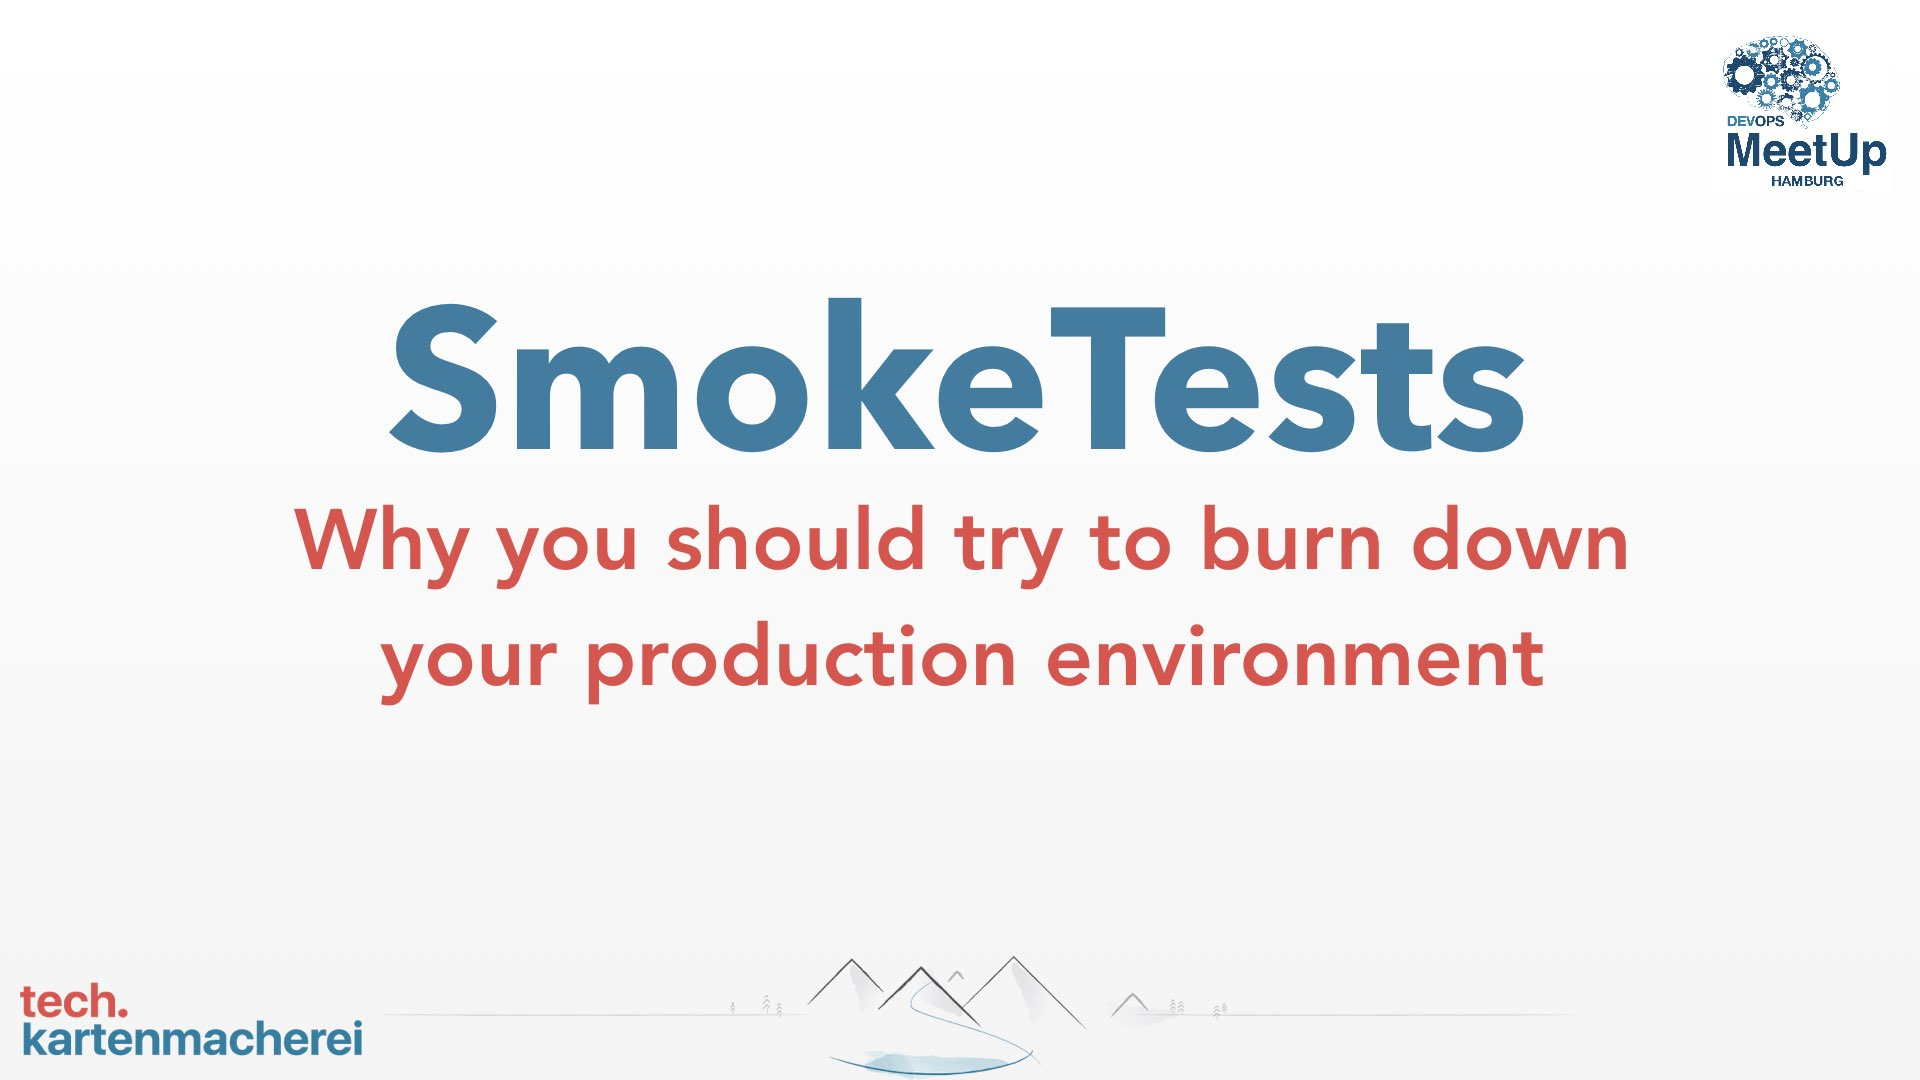 Erste Folie aus Sebastian Thoss's Vortrag ü SmokeTests- Why you should try to burn down your production environment